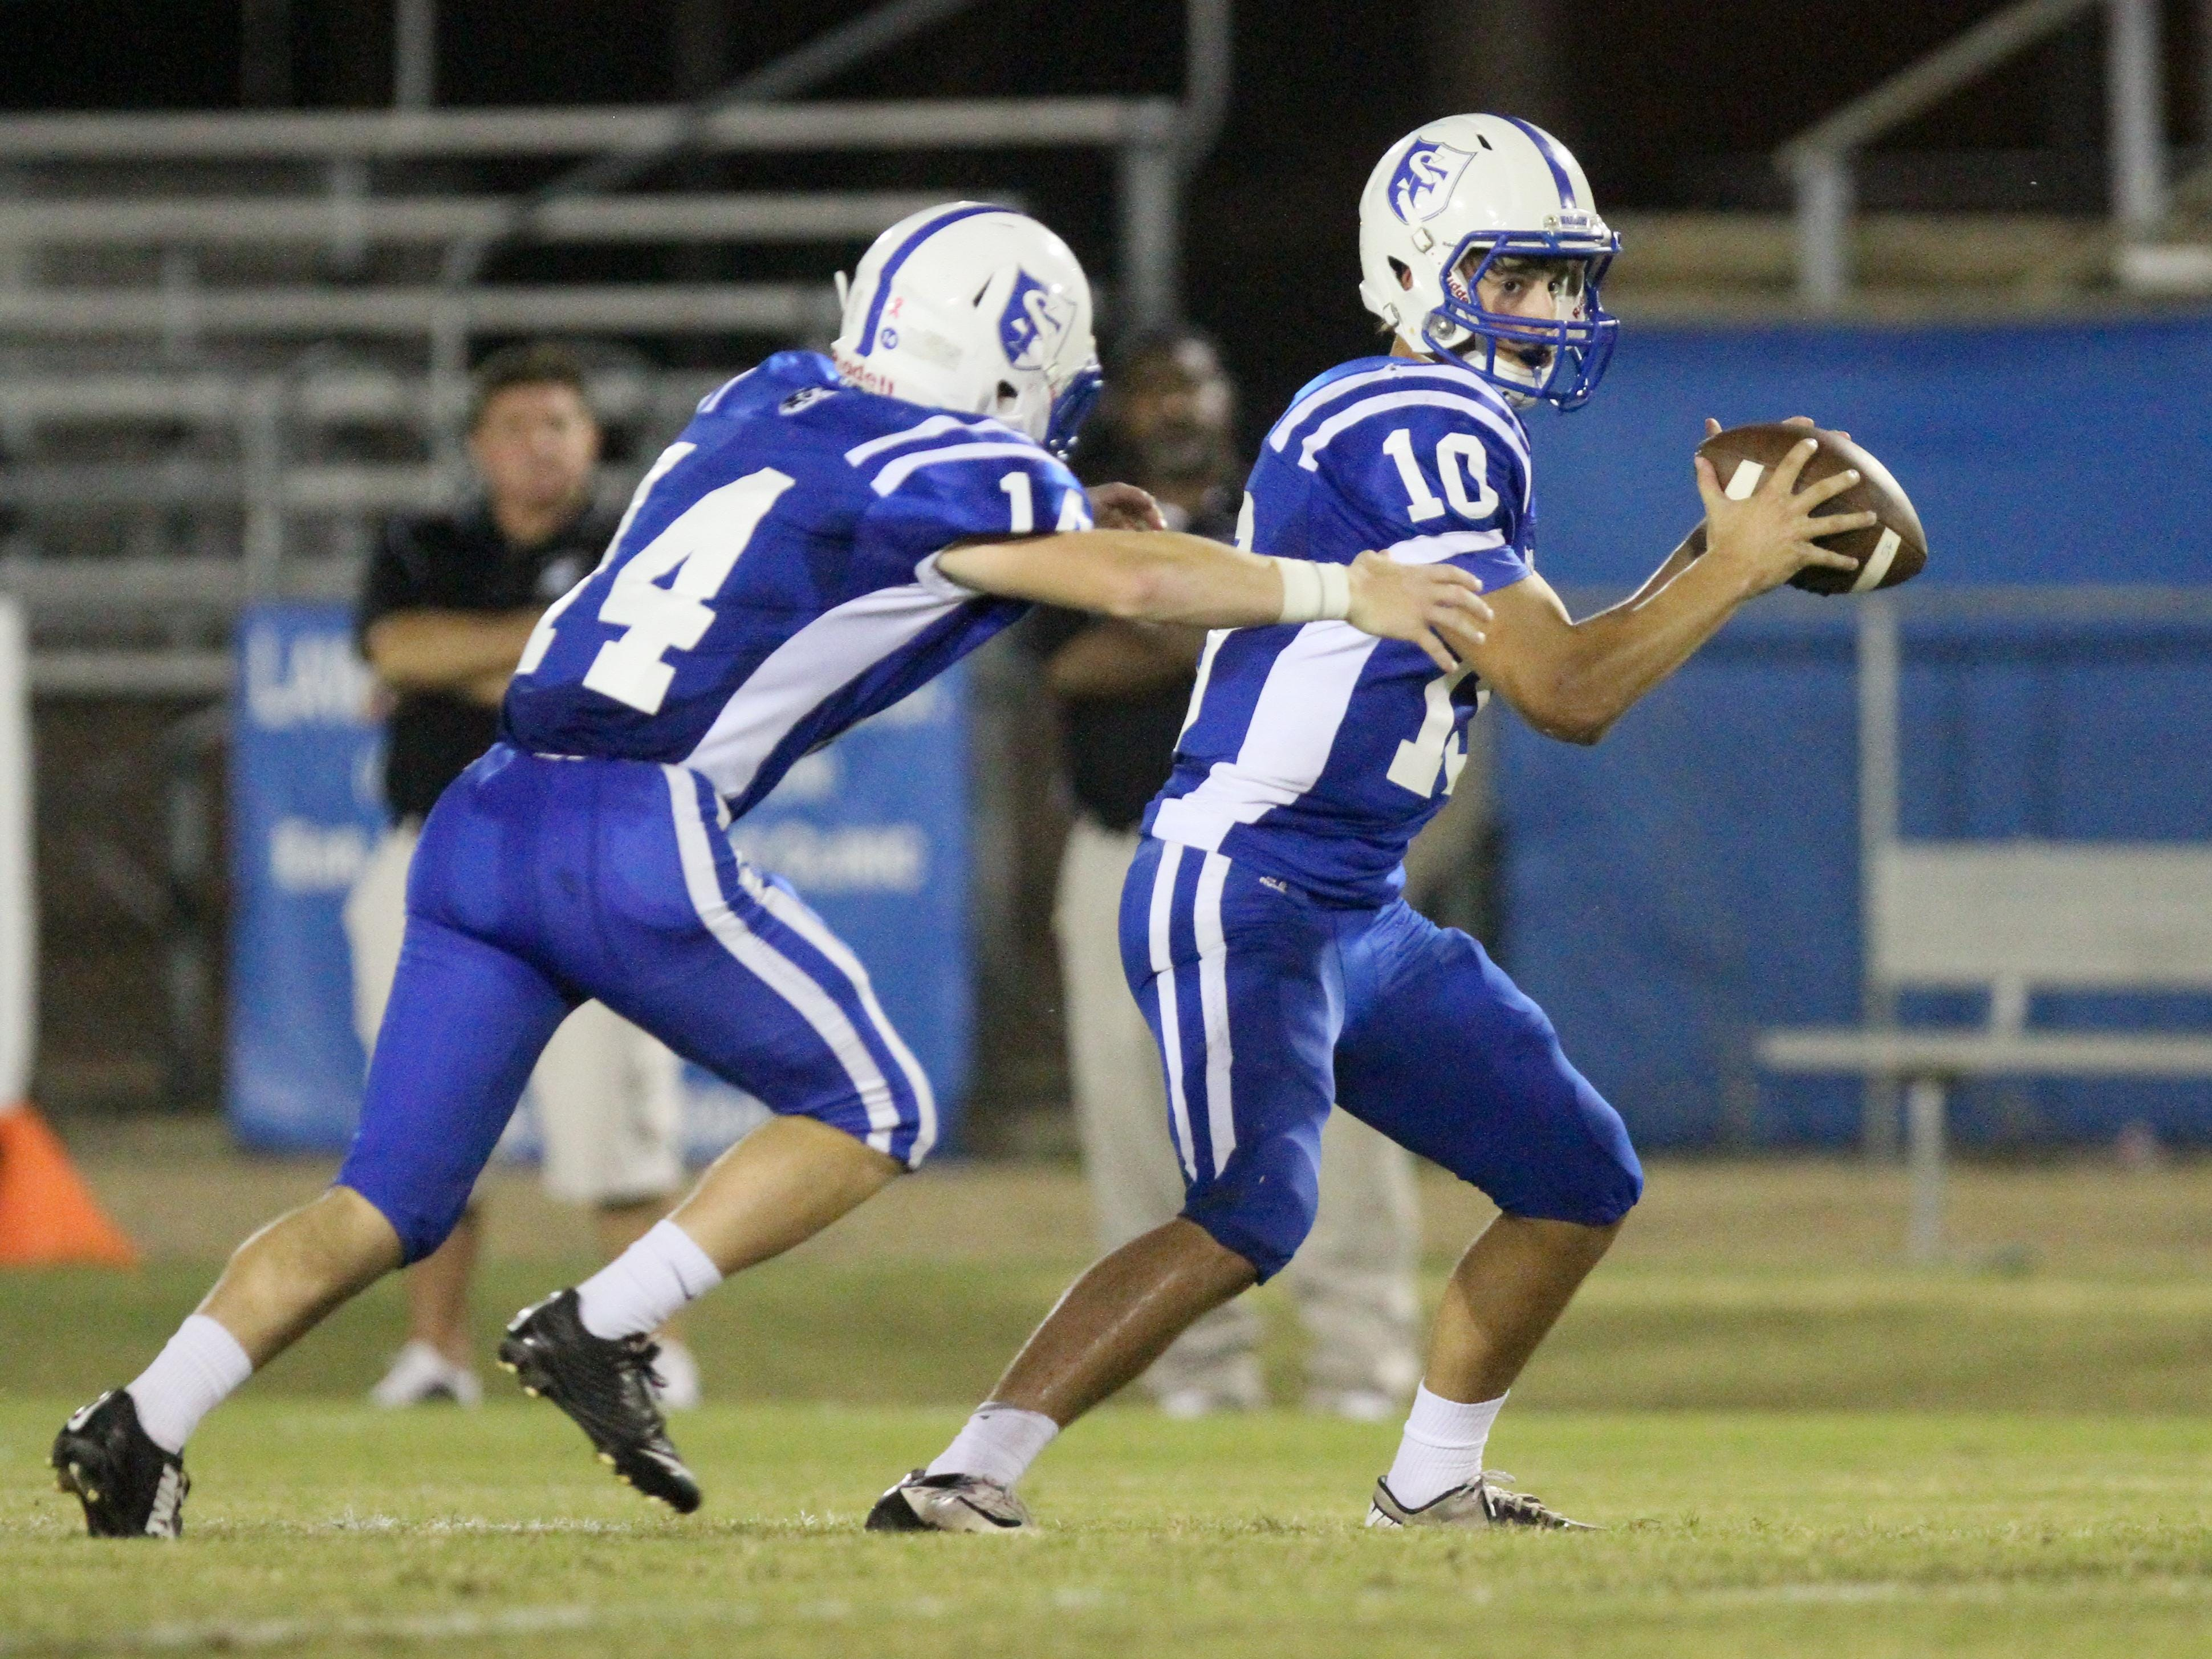 St. Frederick quarterback Barrett Coon leads the Warriors into the season opener Friday at home against Drew Central (Arkansas) at 7 p.m.